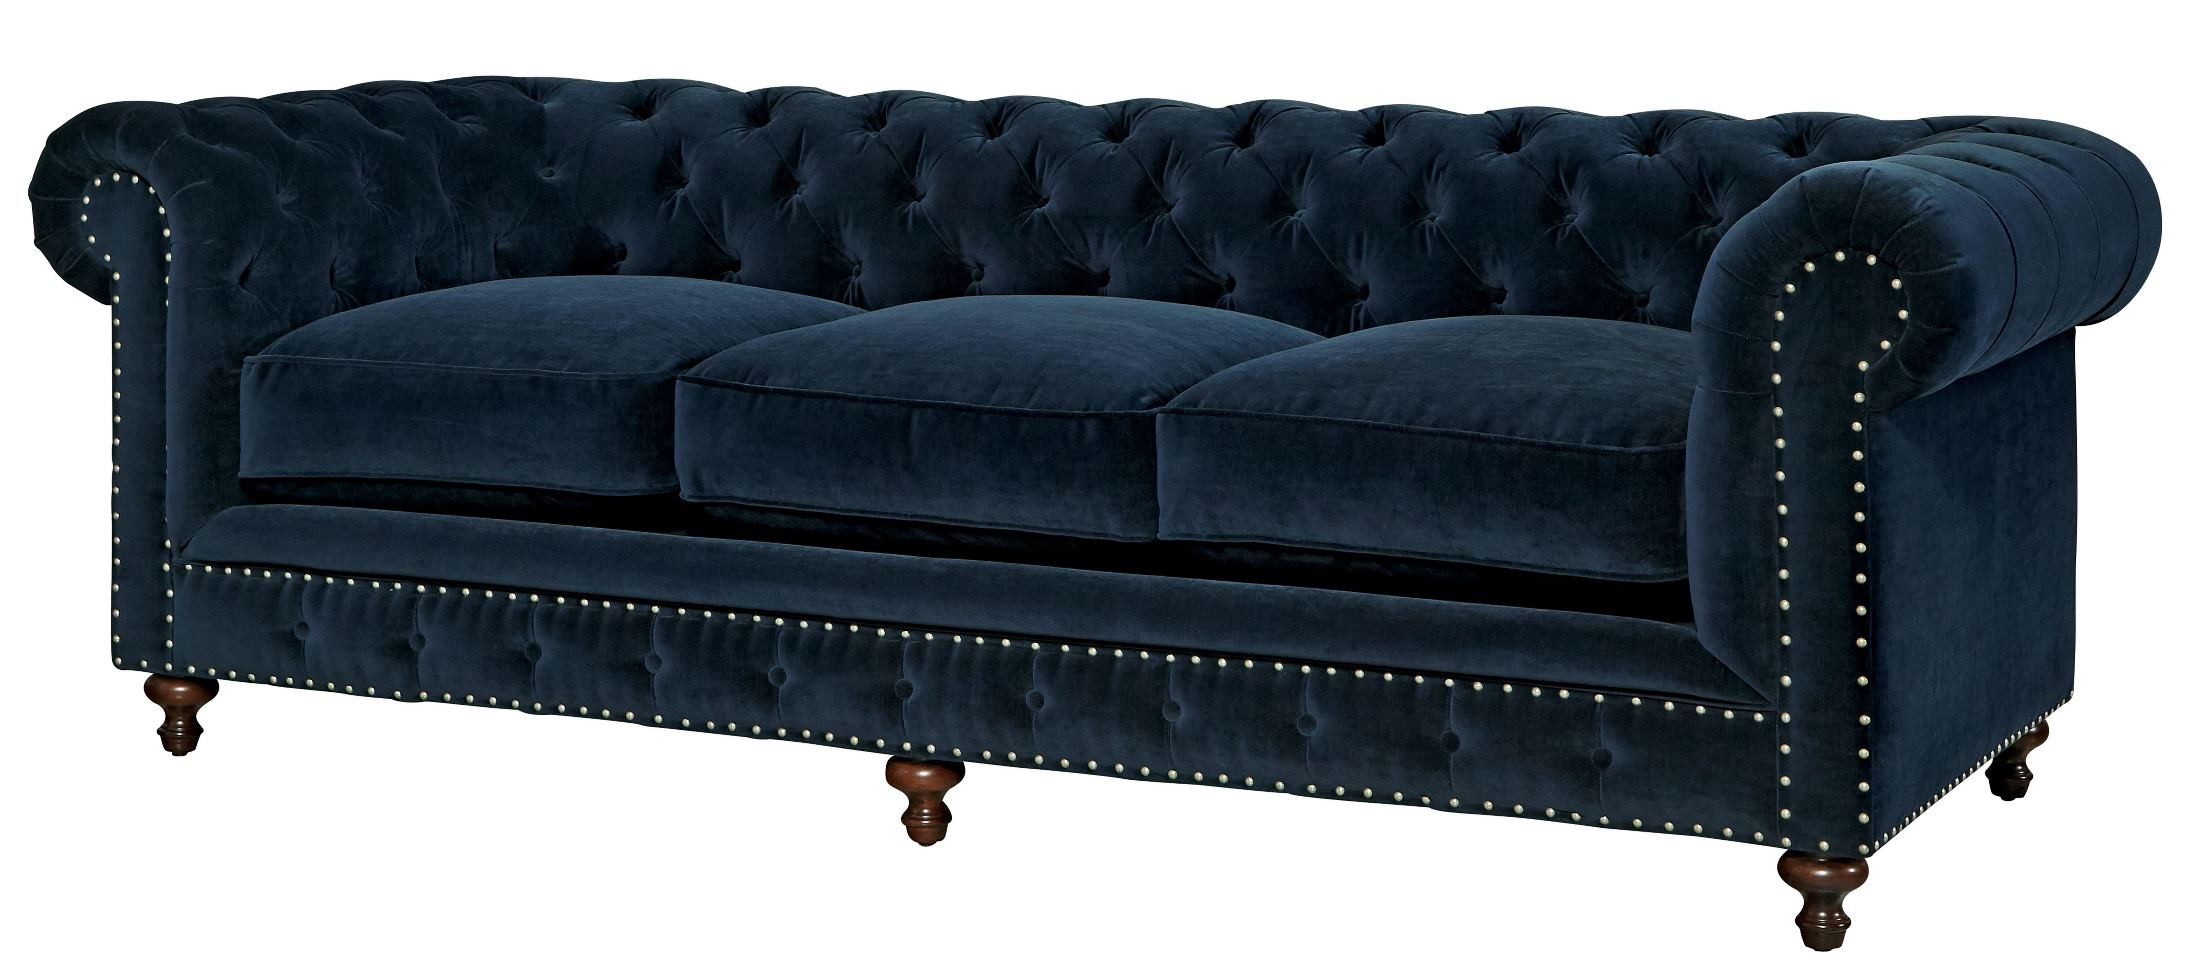 Berkeley Sumatra Blue Velvet Sofa from Universal Coleman  : 417501 623salt from colemanfurniture.com size 2200 x 970 jpeg 258kB